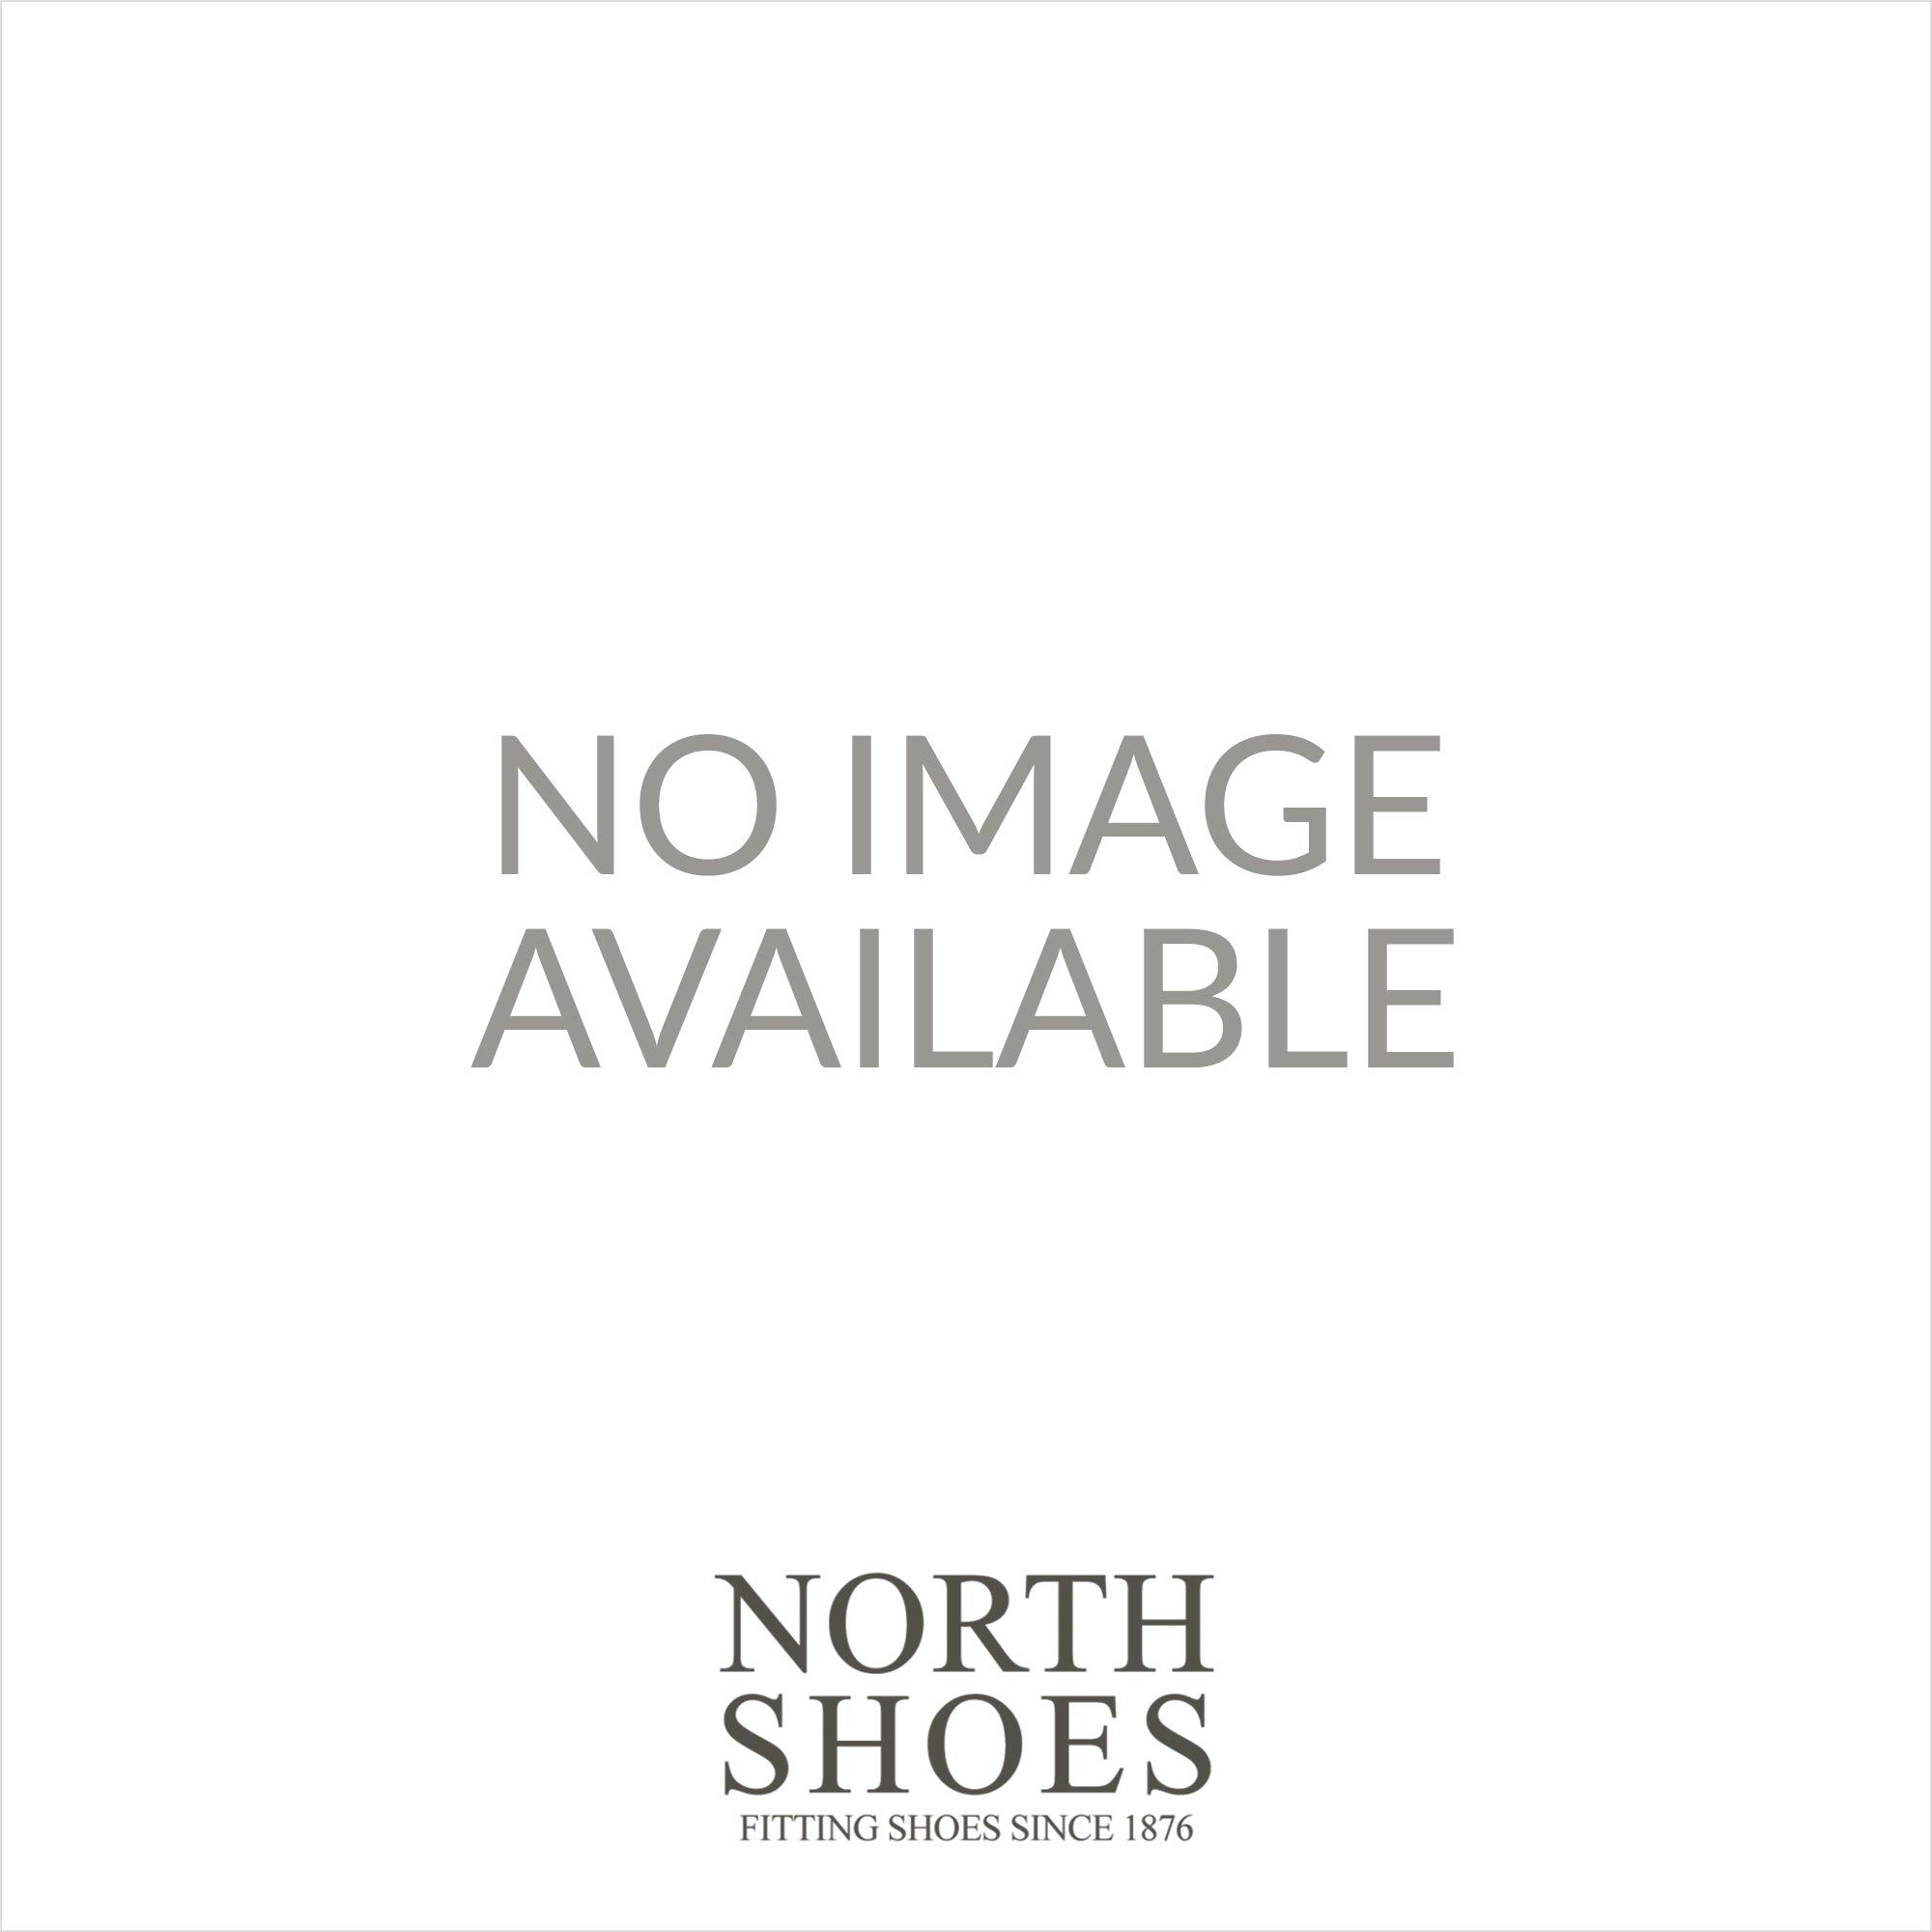 Ginger 225008 173 211 Silver Leather Womens Strapy Sandals - UK 4½